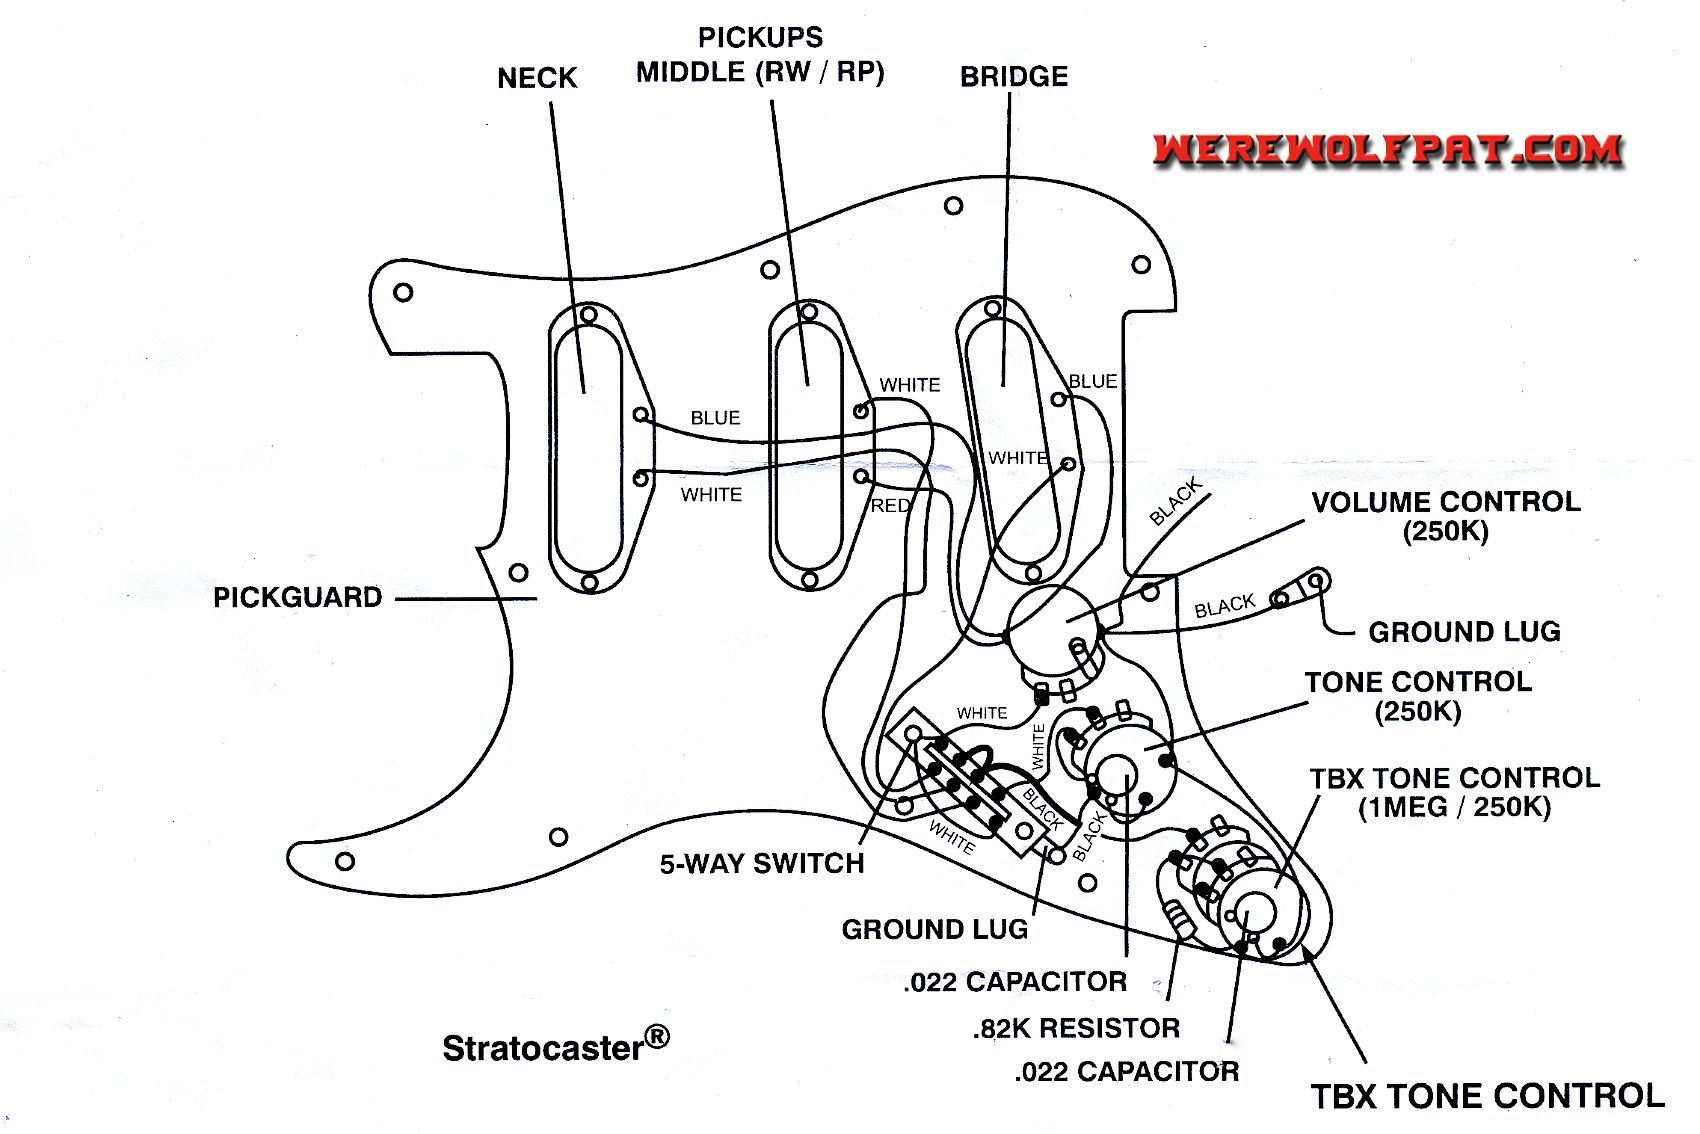 9da2b880a6f85f6b5d2b318af1f8a9ec wiring diagram electric guitar wiring diagrams and schematics electric guitar wiring diagrams and schematics at metegol.co